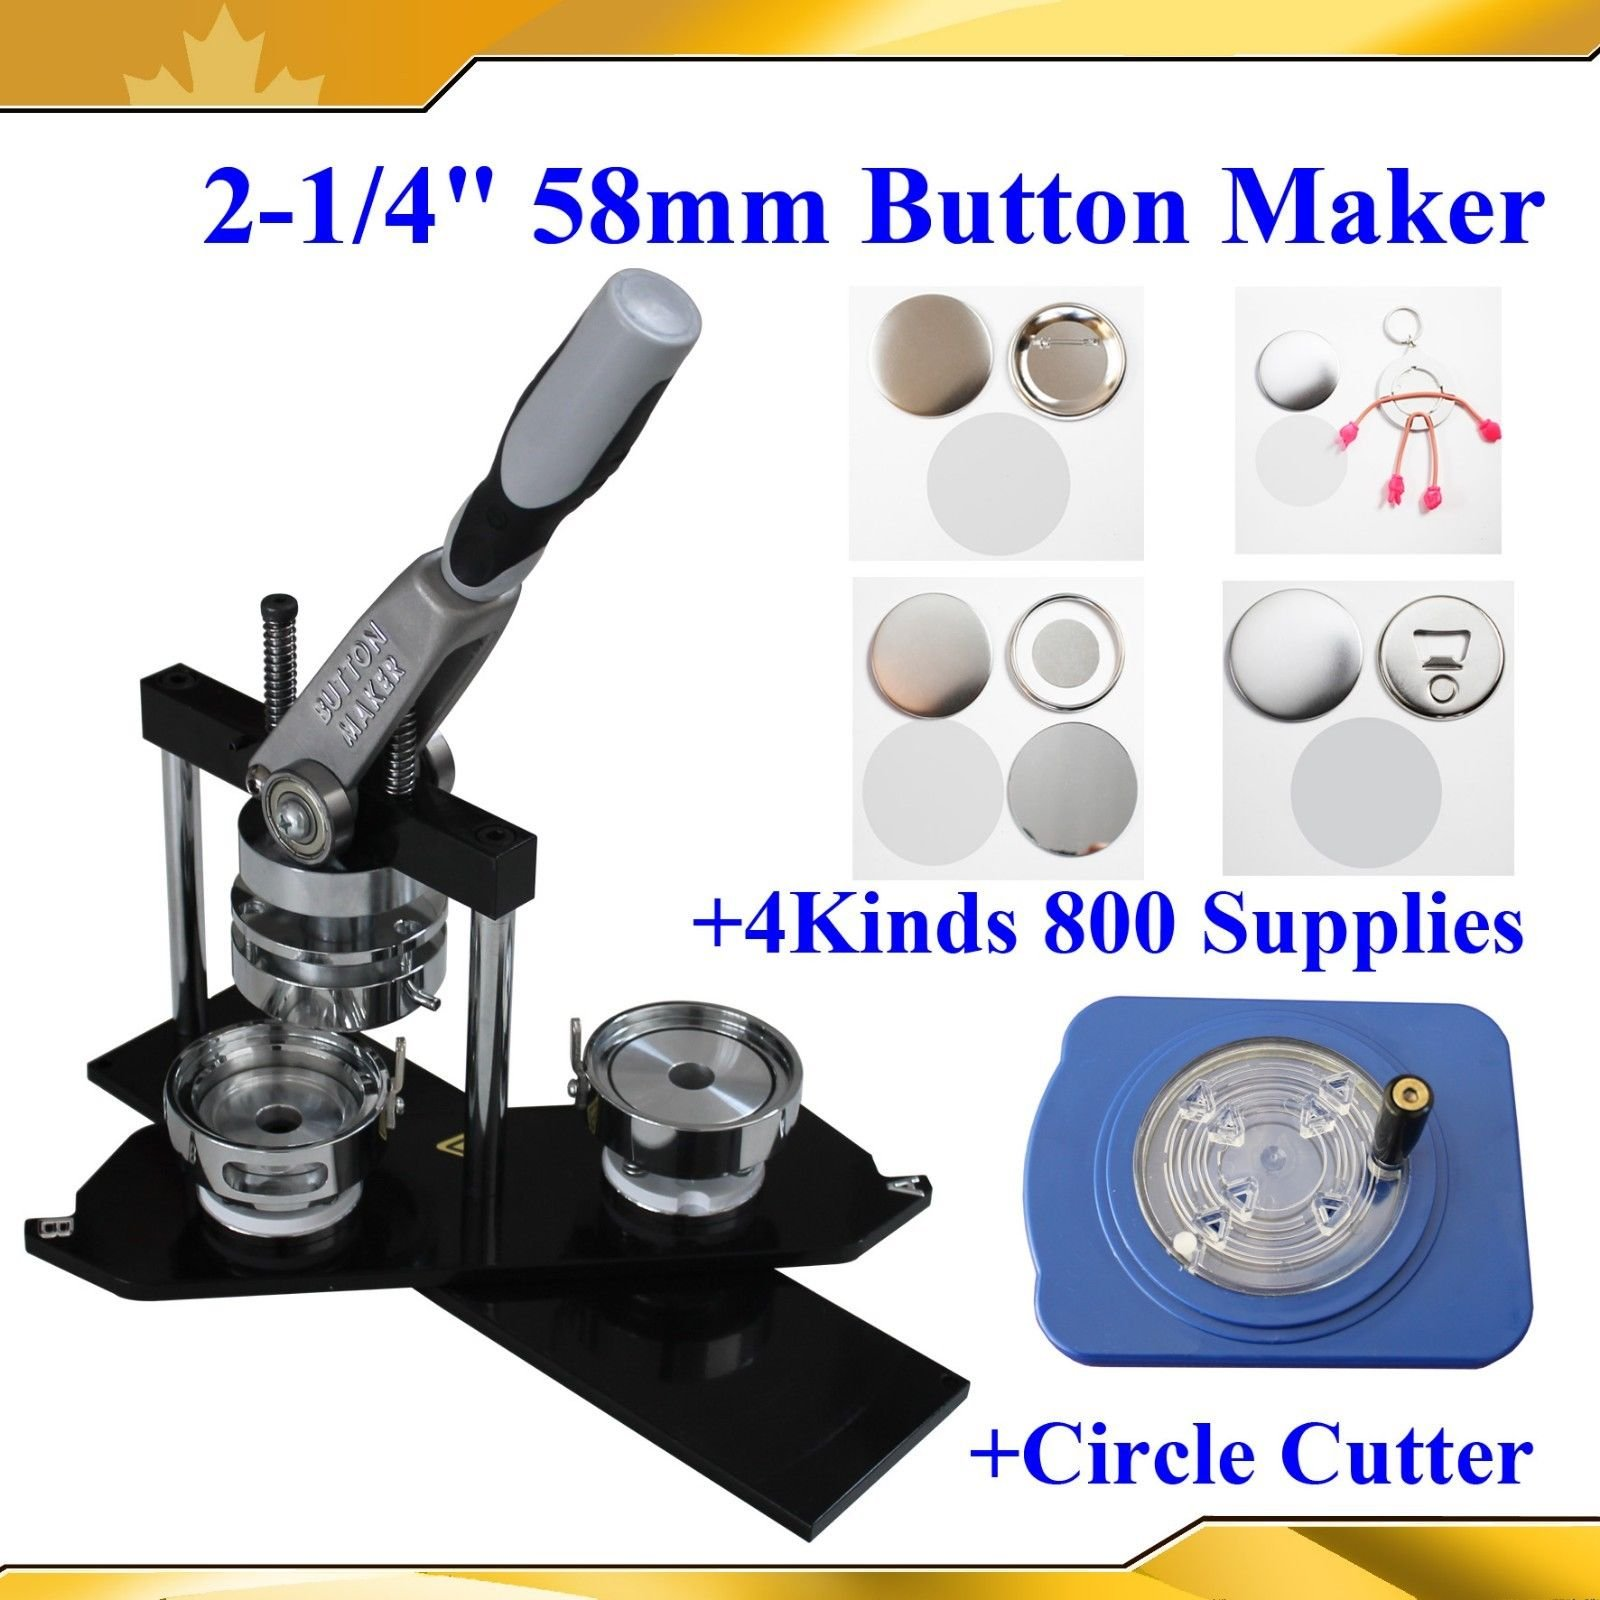 Superior N3 2-1/4'' 58mm Badge Maker+4 Kinds 800 Button Supplies+circle Cutter